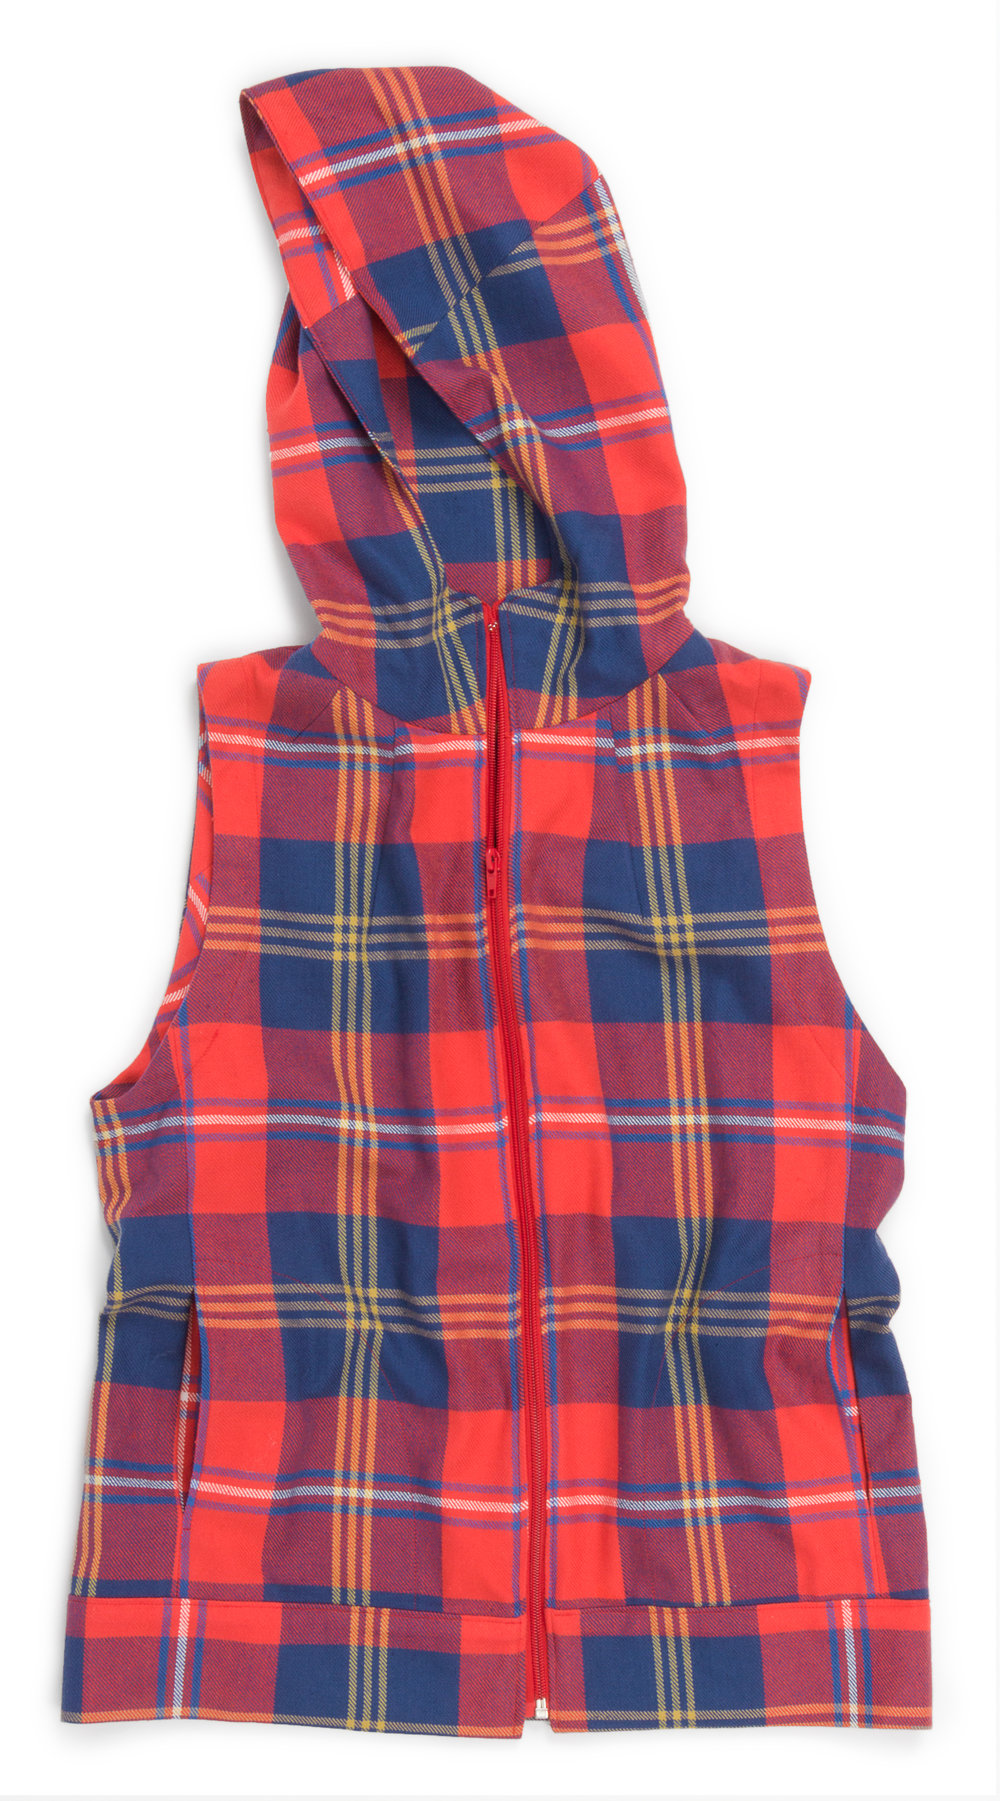 Dropje Hooded Vest  designed by  Waffle Patterns , made by  Samantha Lindgren , features   Grizzly Plaid ( SRK-16417-3 RED)